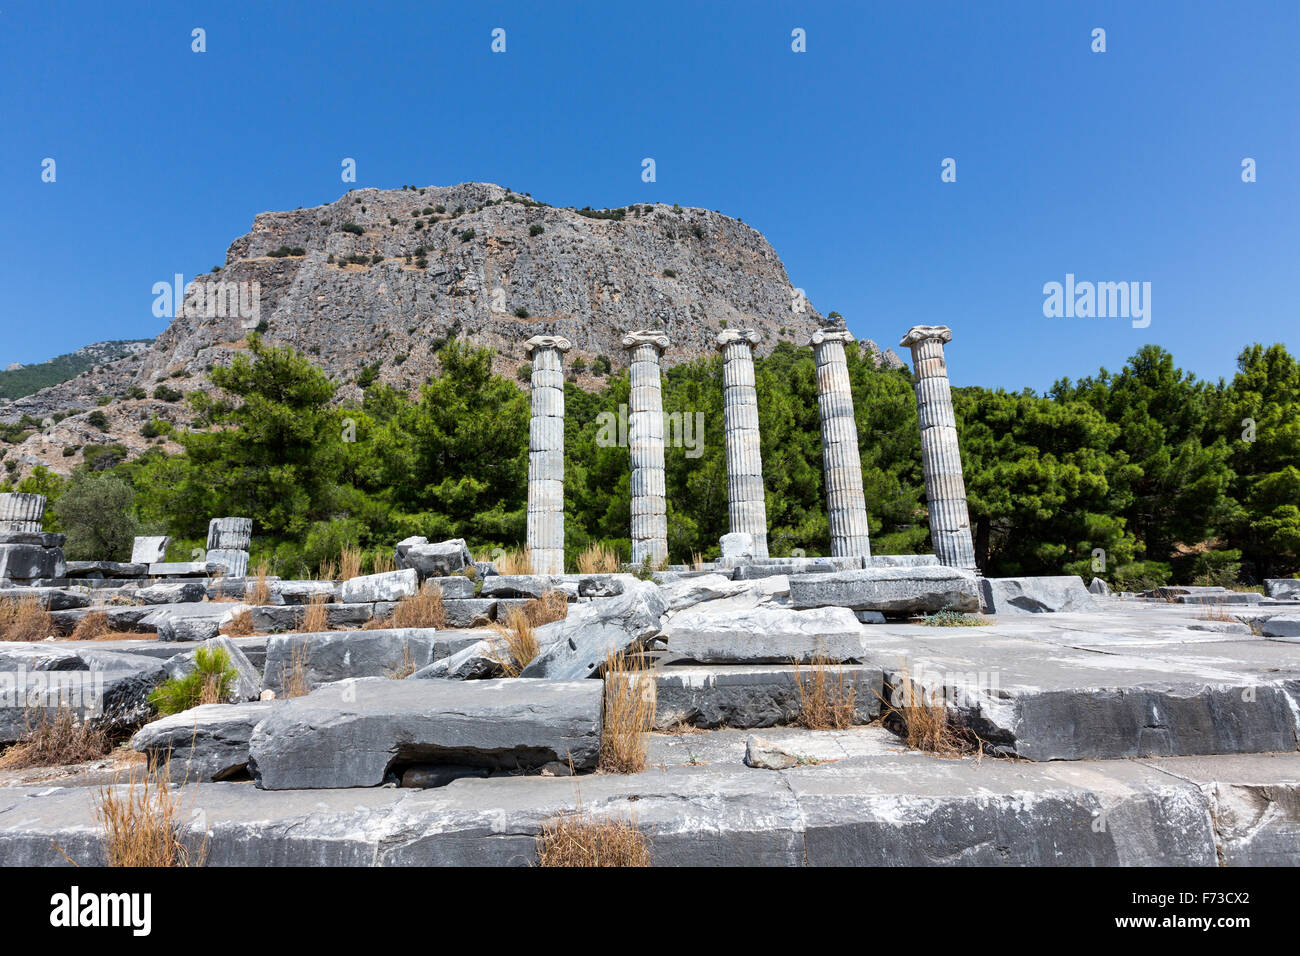 Temple of Athena, Priene an ancient Greek city of Ionia at the base of an escarpment of Mycale. - Stock Image